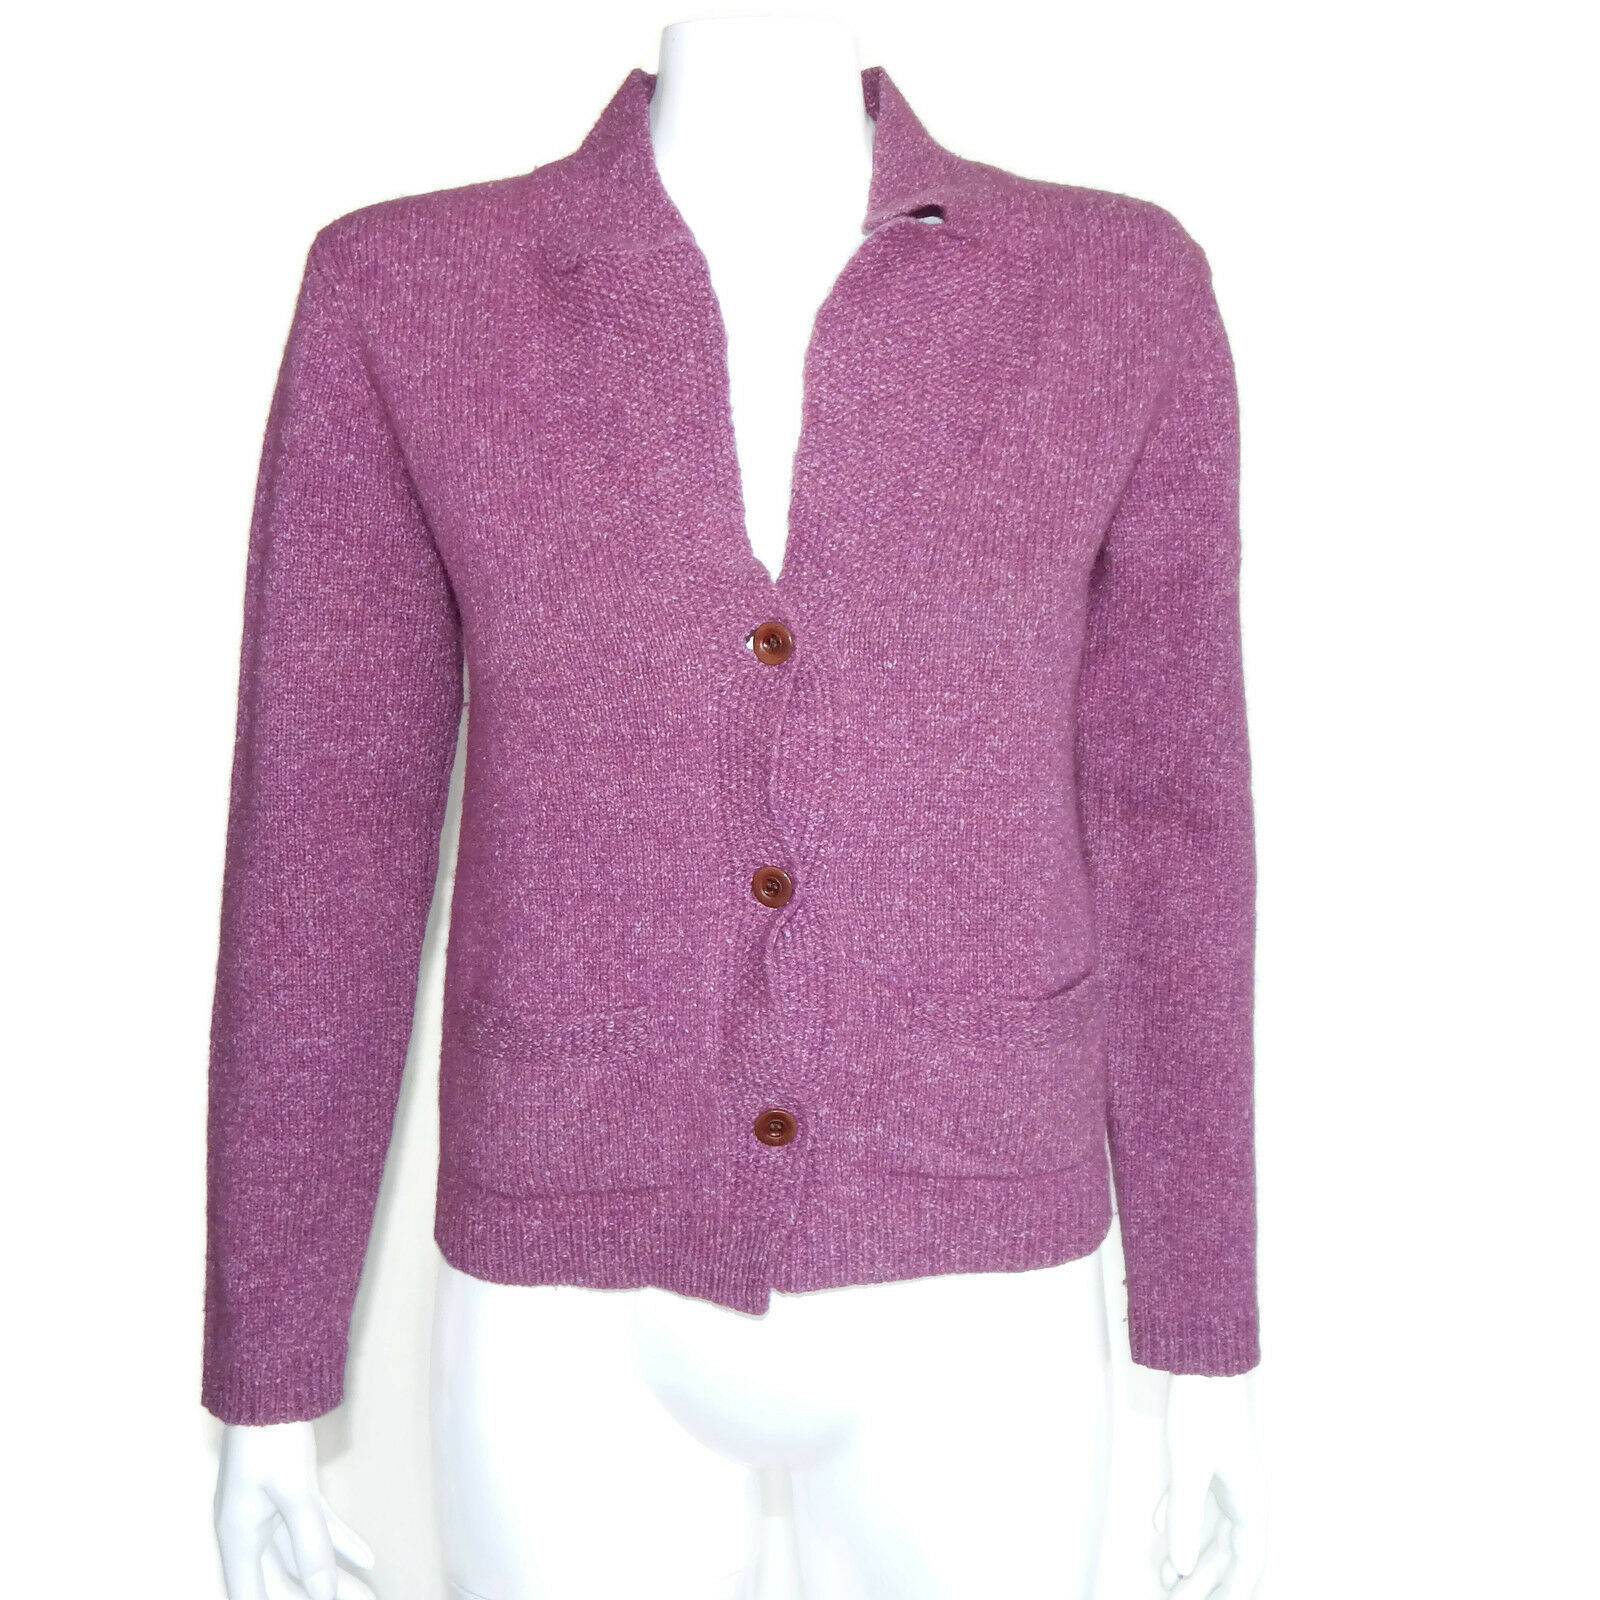 DRIES VAN NOTEN Purple Wool Silk Cardigan Button Front Front Front Sweater Belgium sz S 1863 d6c88d